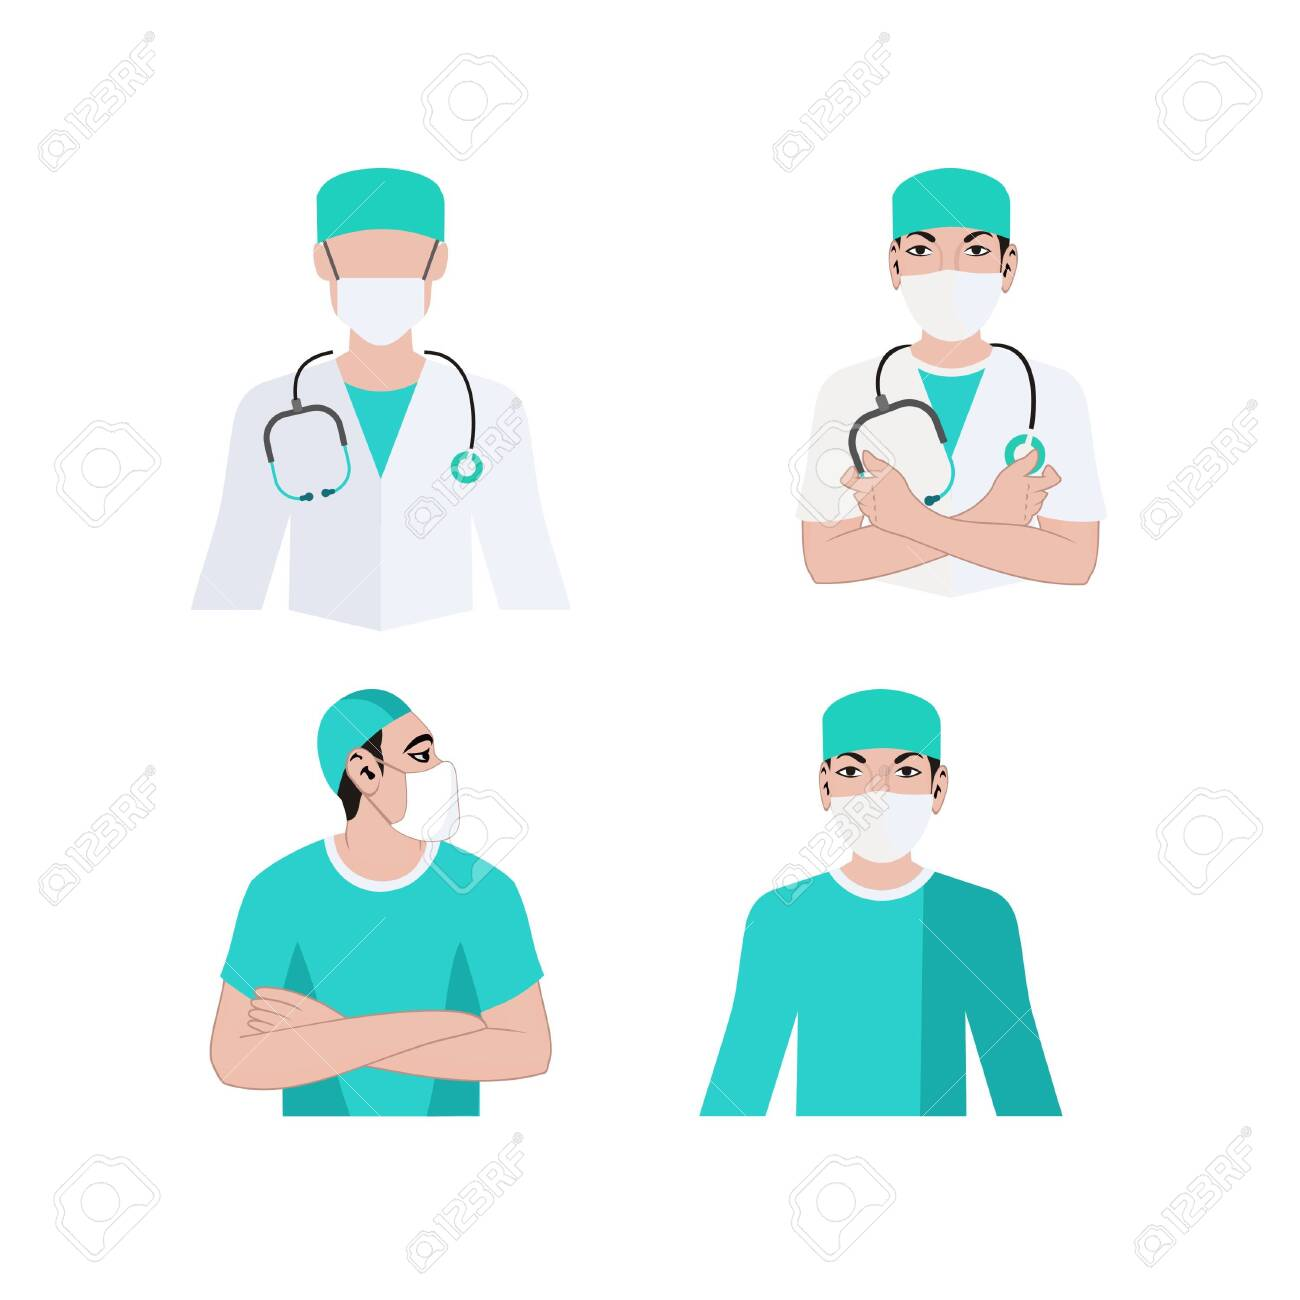 Doctor Medical Team Medical Doctor Surgeon Surgery Logo Royalty Free Cliparts Vectors And Stock Illustration Image 129709925